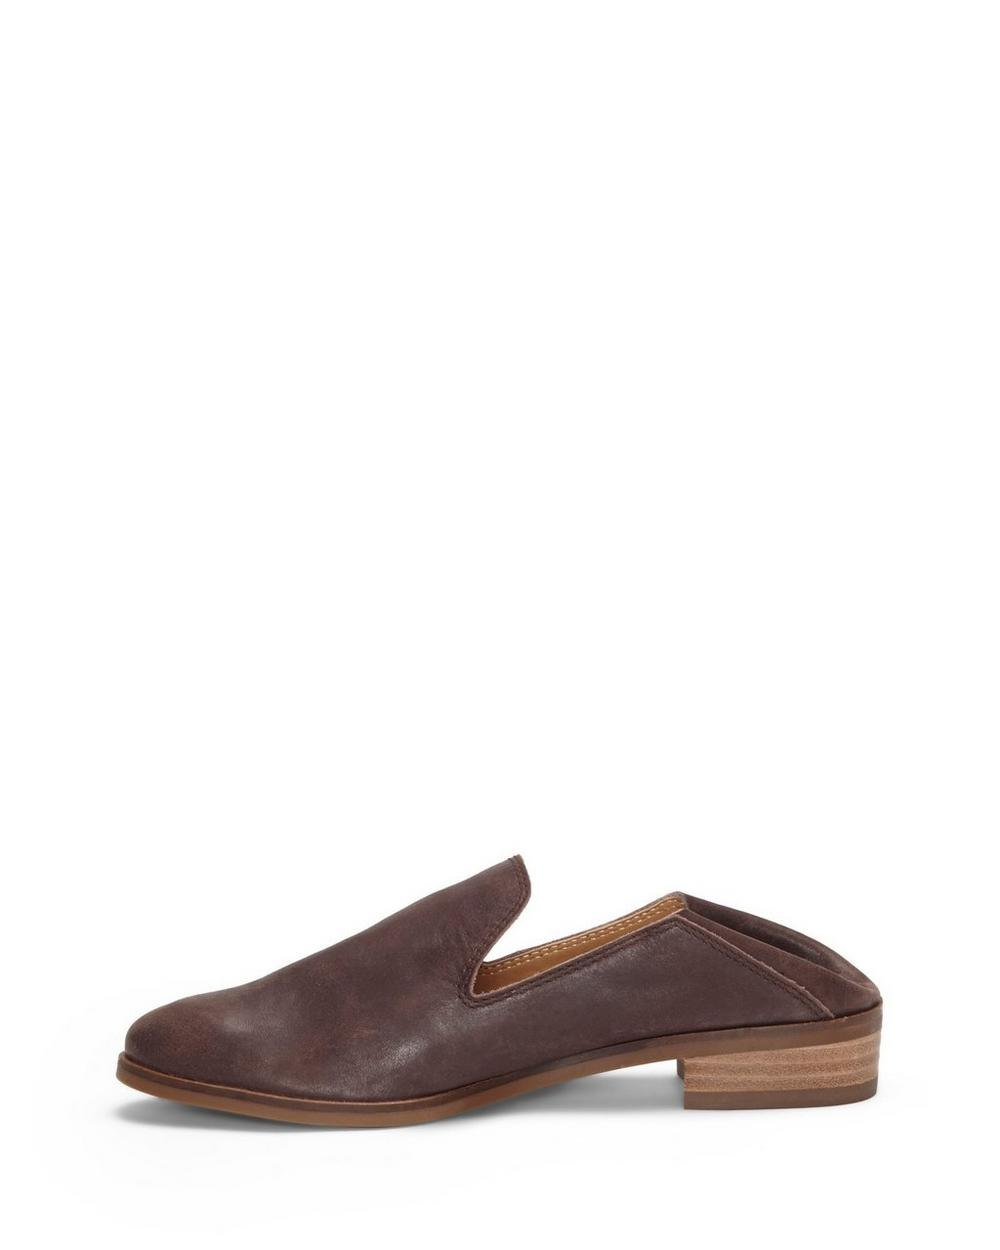 CAHILL LEATHER FLAT, image 3